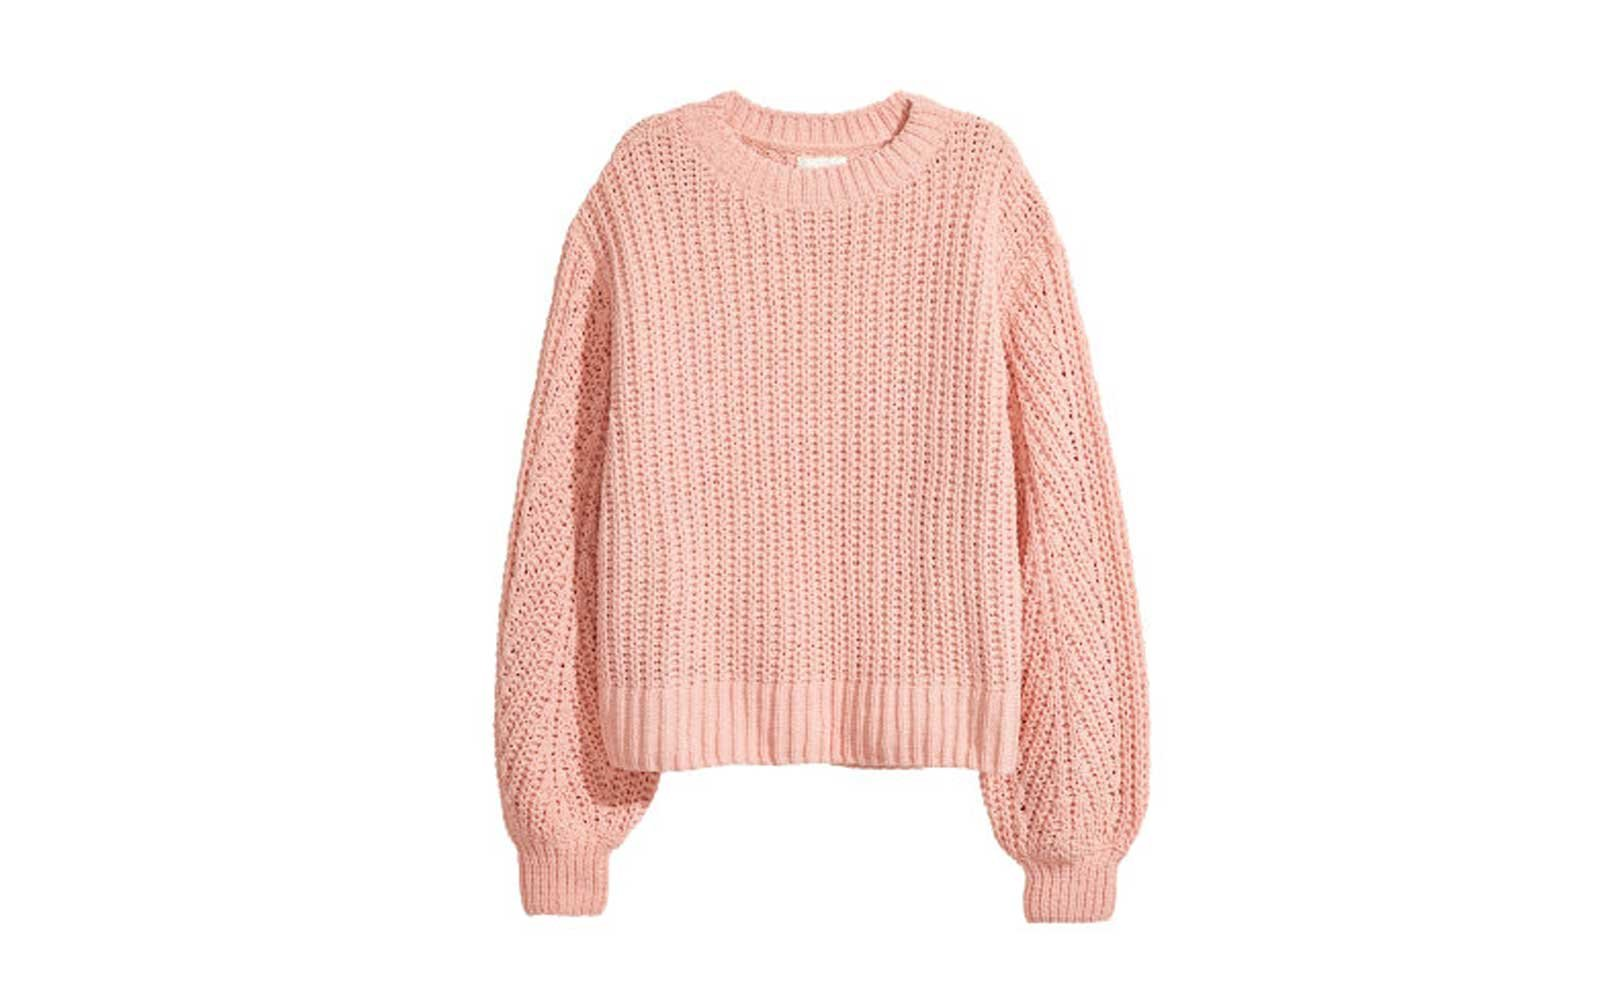 1e078be5a910d H&M Loose-knit Sweater in Powder Pink. Oversized comfortable sweater